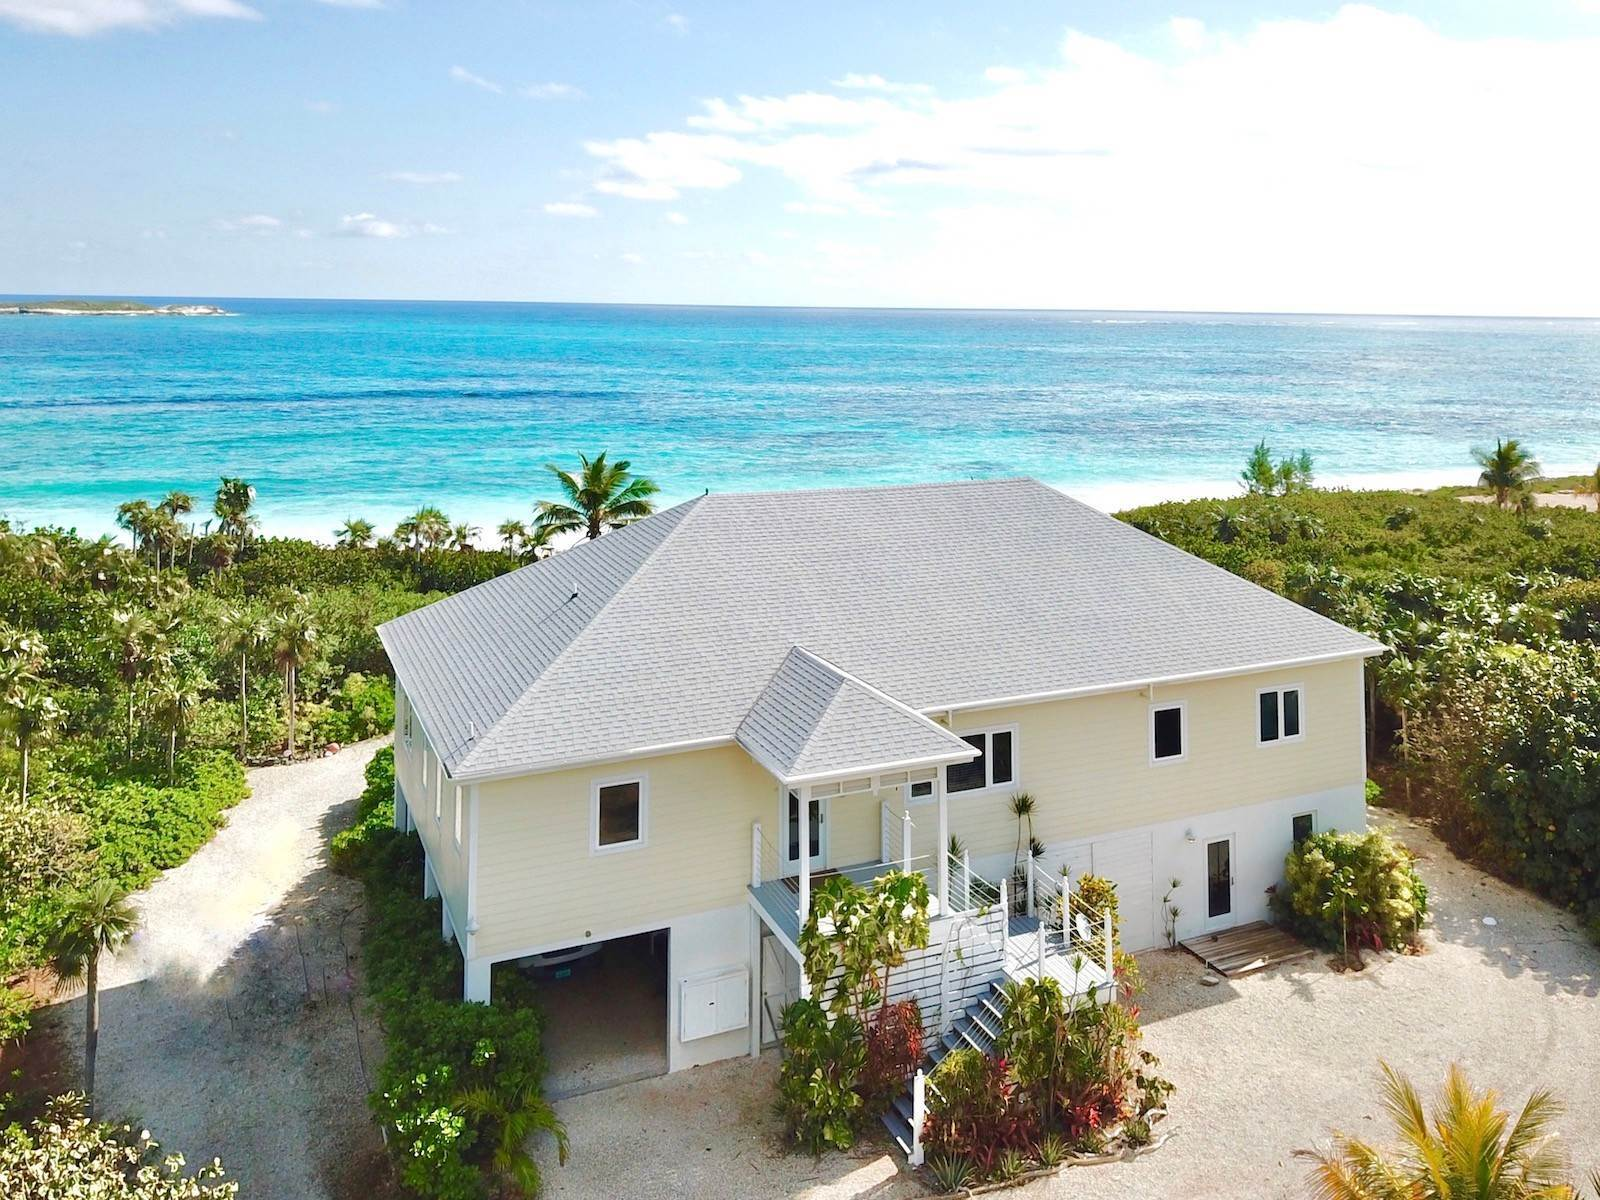 Single Family Homes for Sale at Blissful Beach House on Double Bay - MLS 41021 Double Bay, Eleuthera, Bahamas